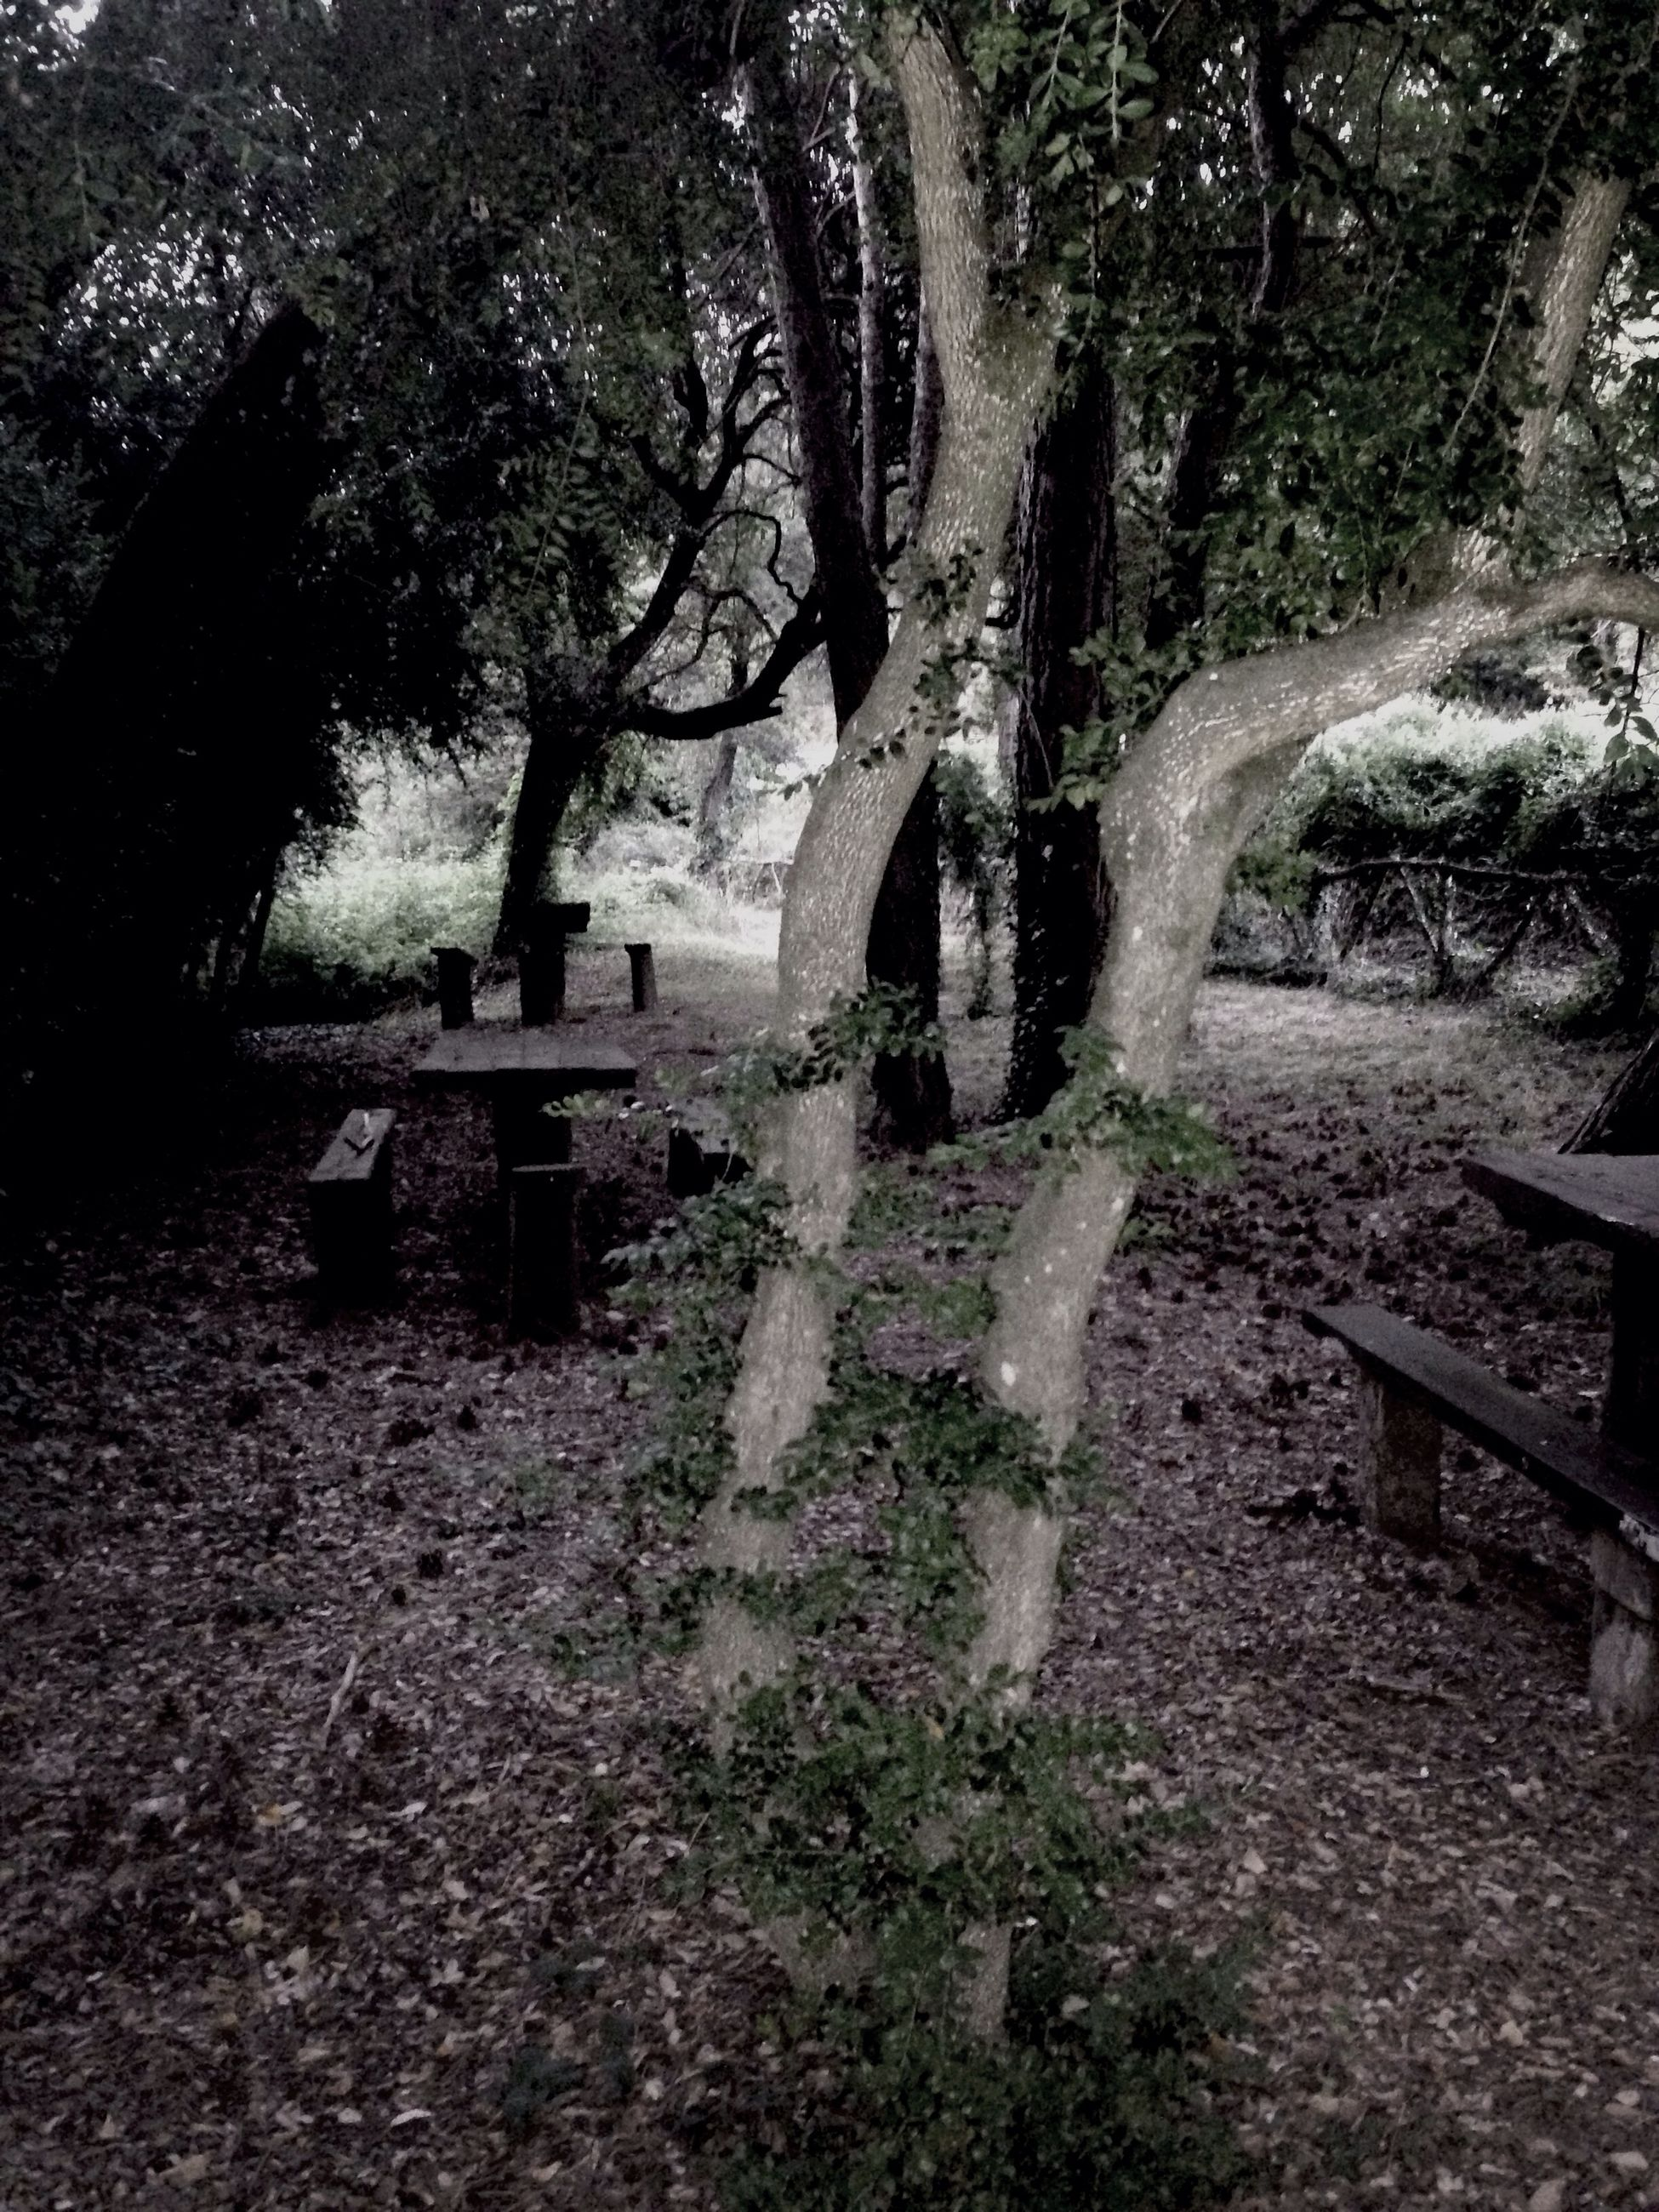 tree, tree trunk, forest, tranquility, growth, built structure, nature, branch, tranquil scene, architecture, day, park - man made space, sunlight, outdoors, abandoned, woodland, shadow, old, no people, beauty in nature